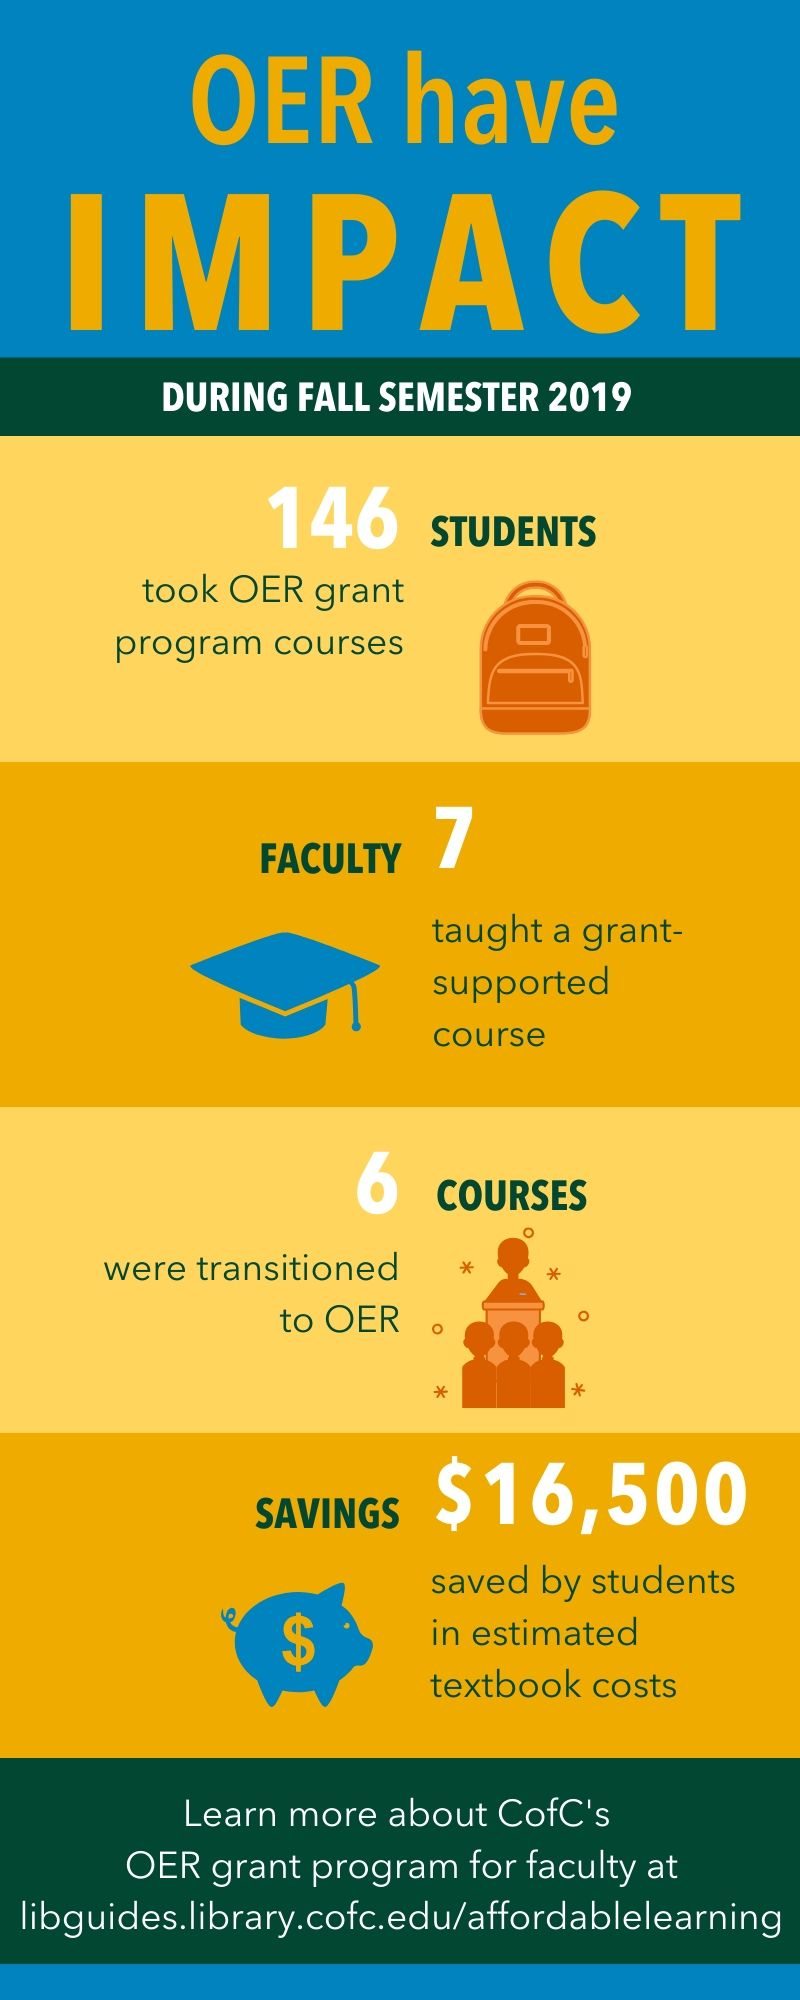 OER have Impact: During Fall Semester 2019 students saved $16,500 in estimated textbook costs